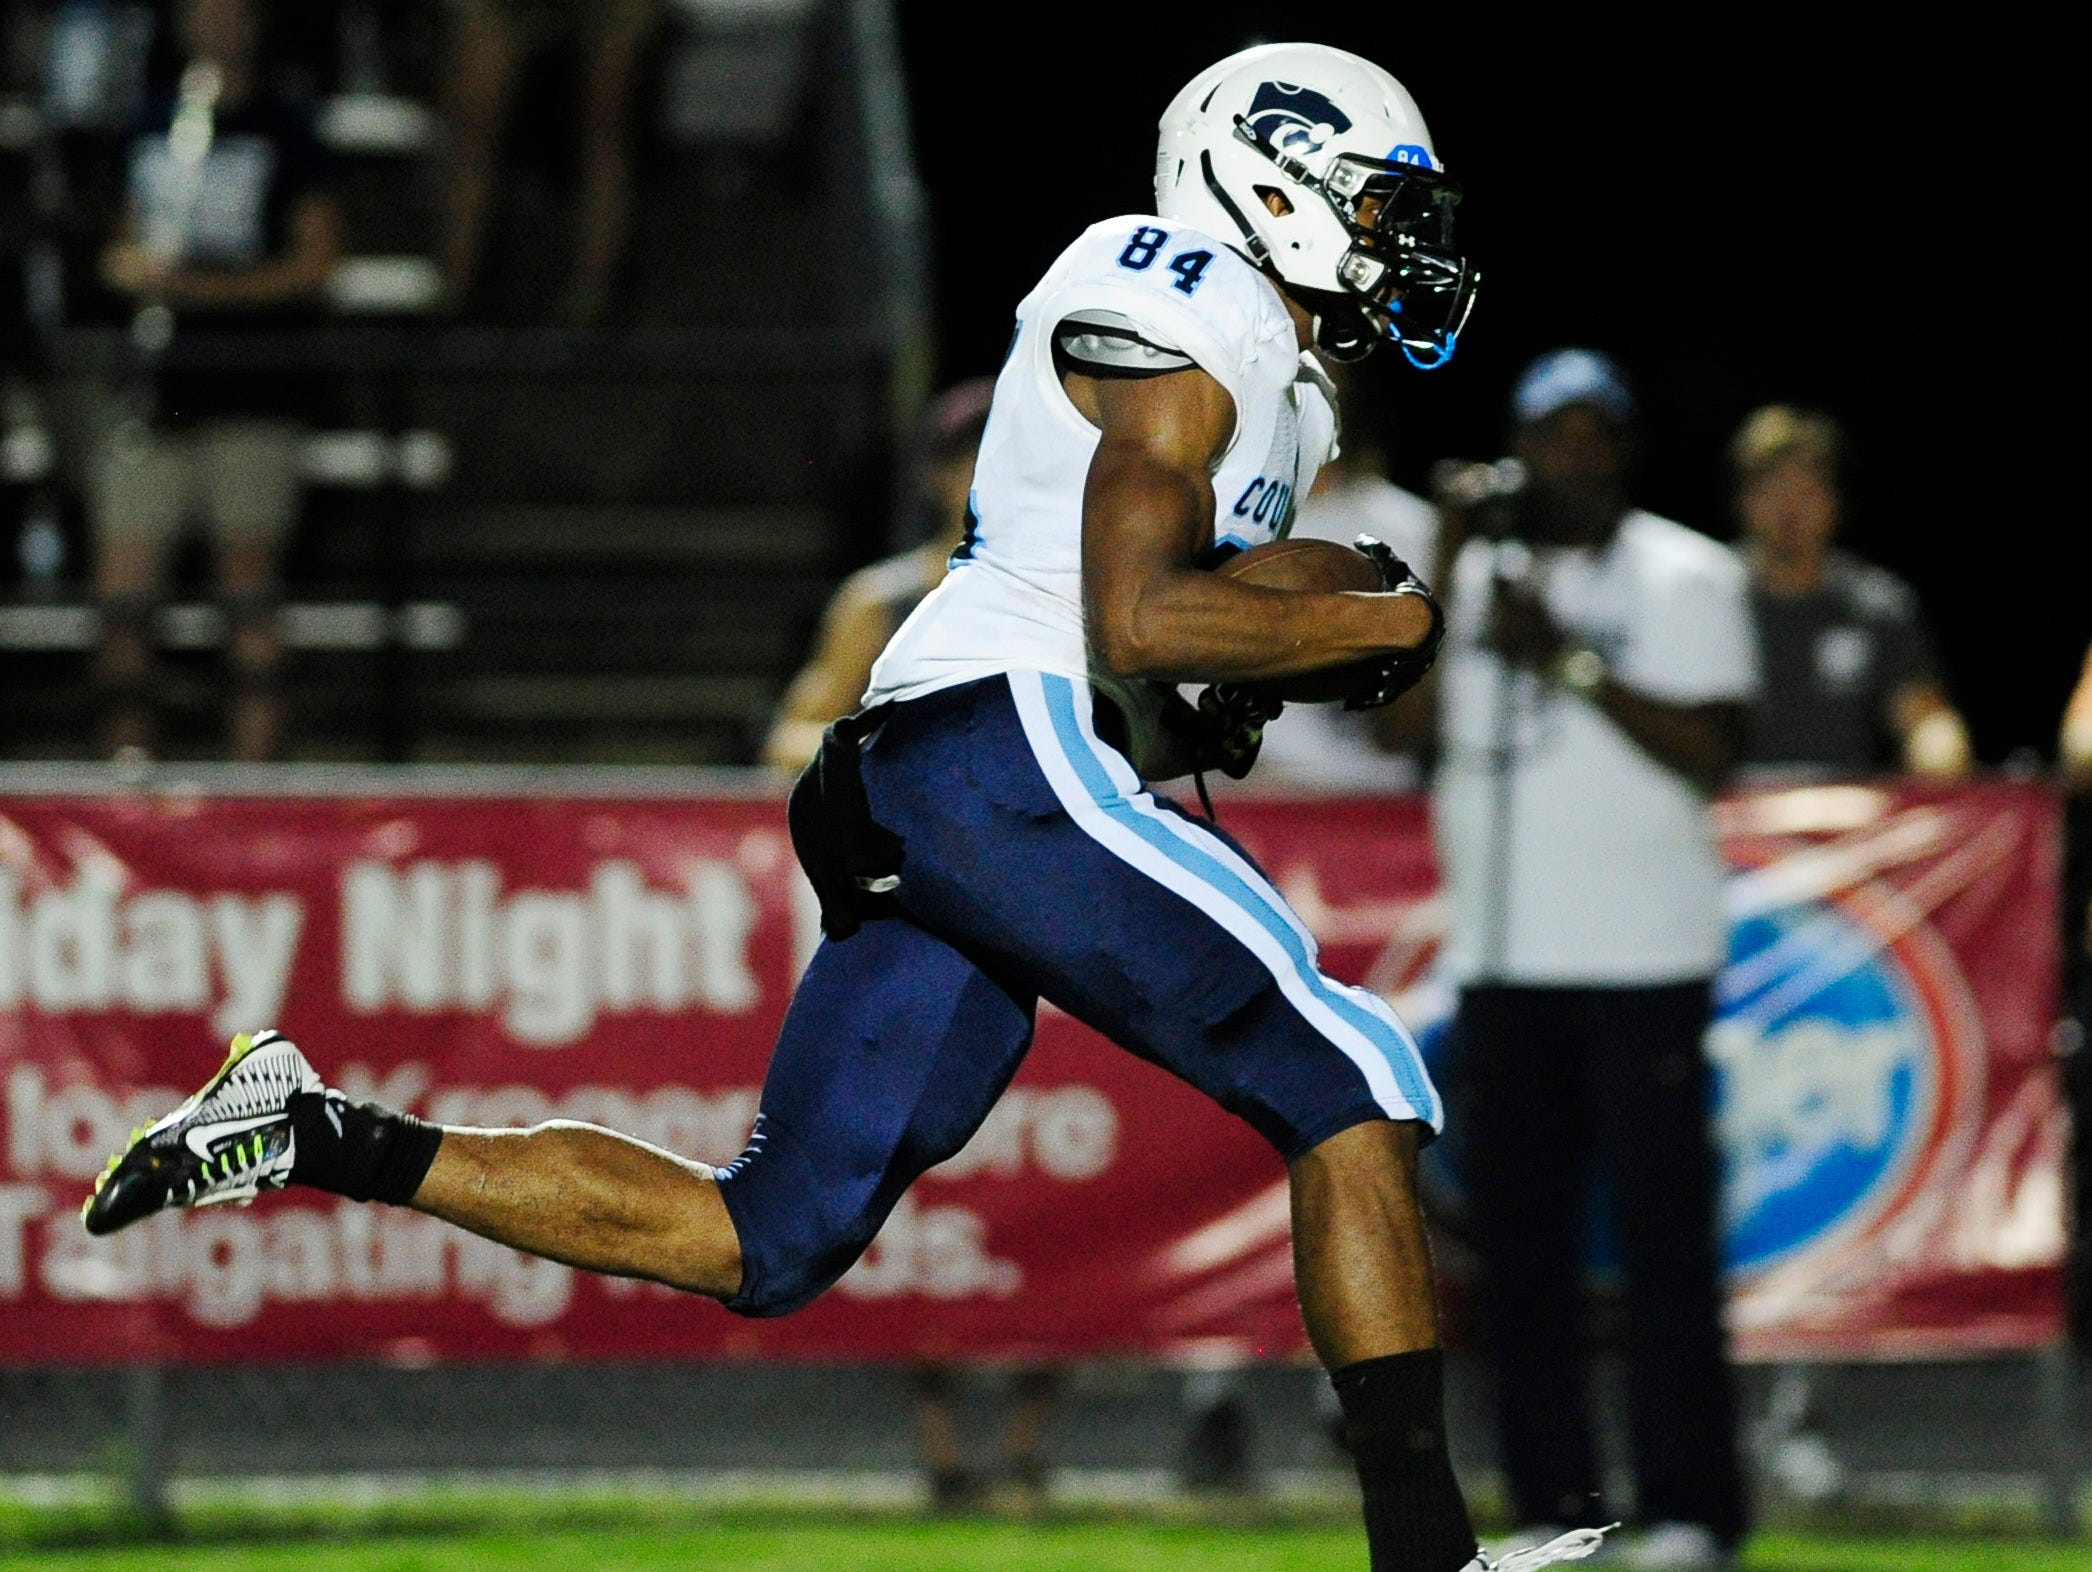 Centennial's Emanuel Hall (84) catches a pass for a touchdown on Friday.